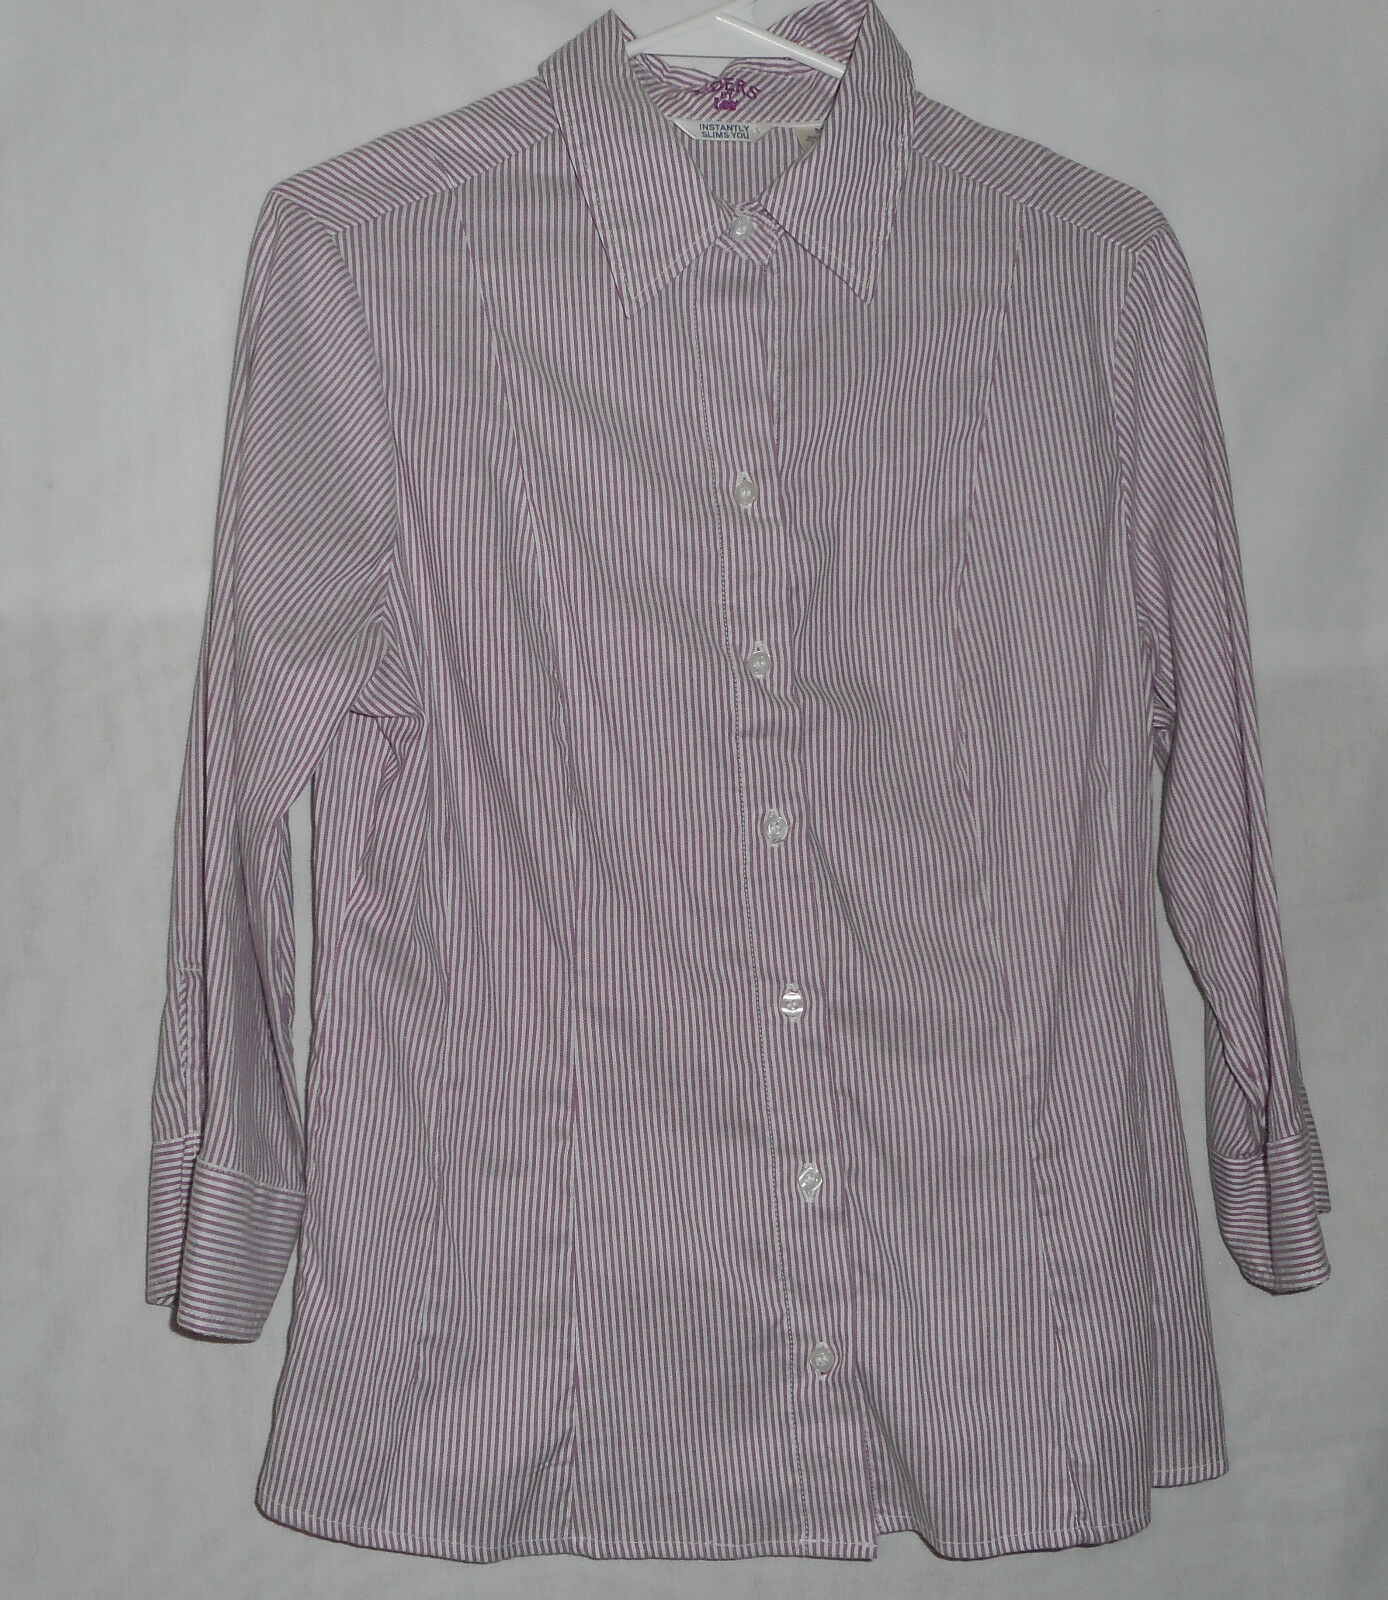 Riders by Lee Womens Size Medium Button Down Shirt Purple White Striped - $8.80